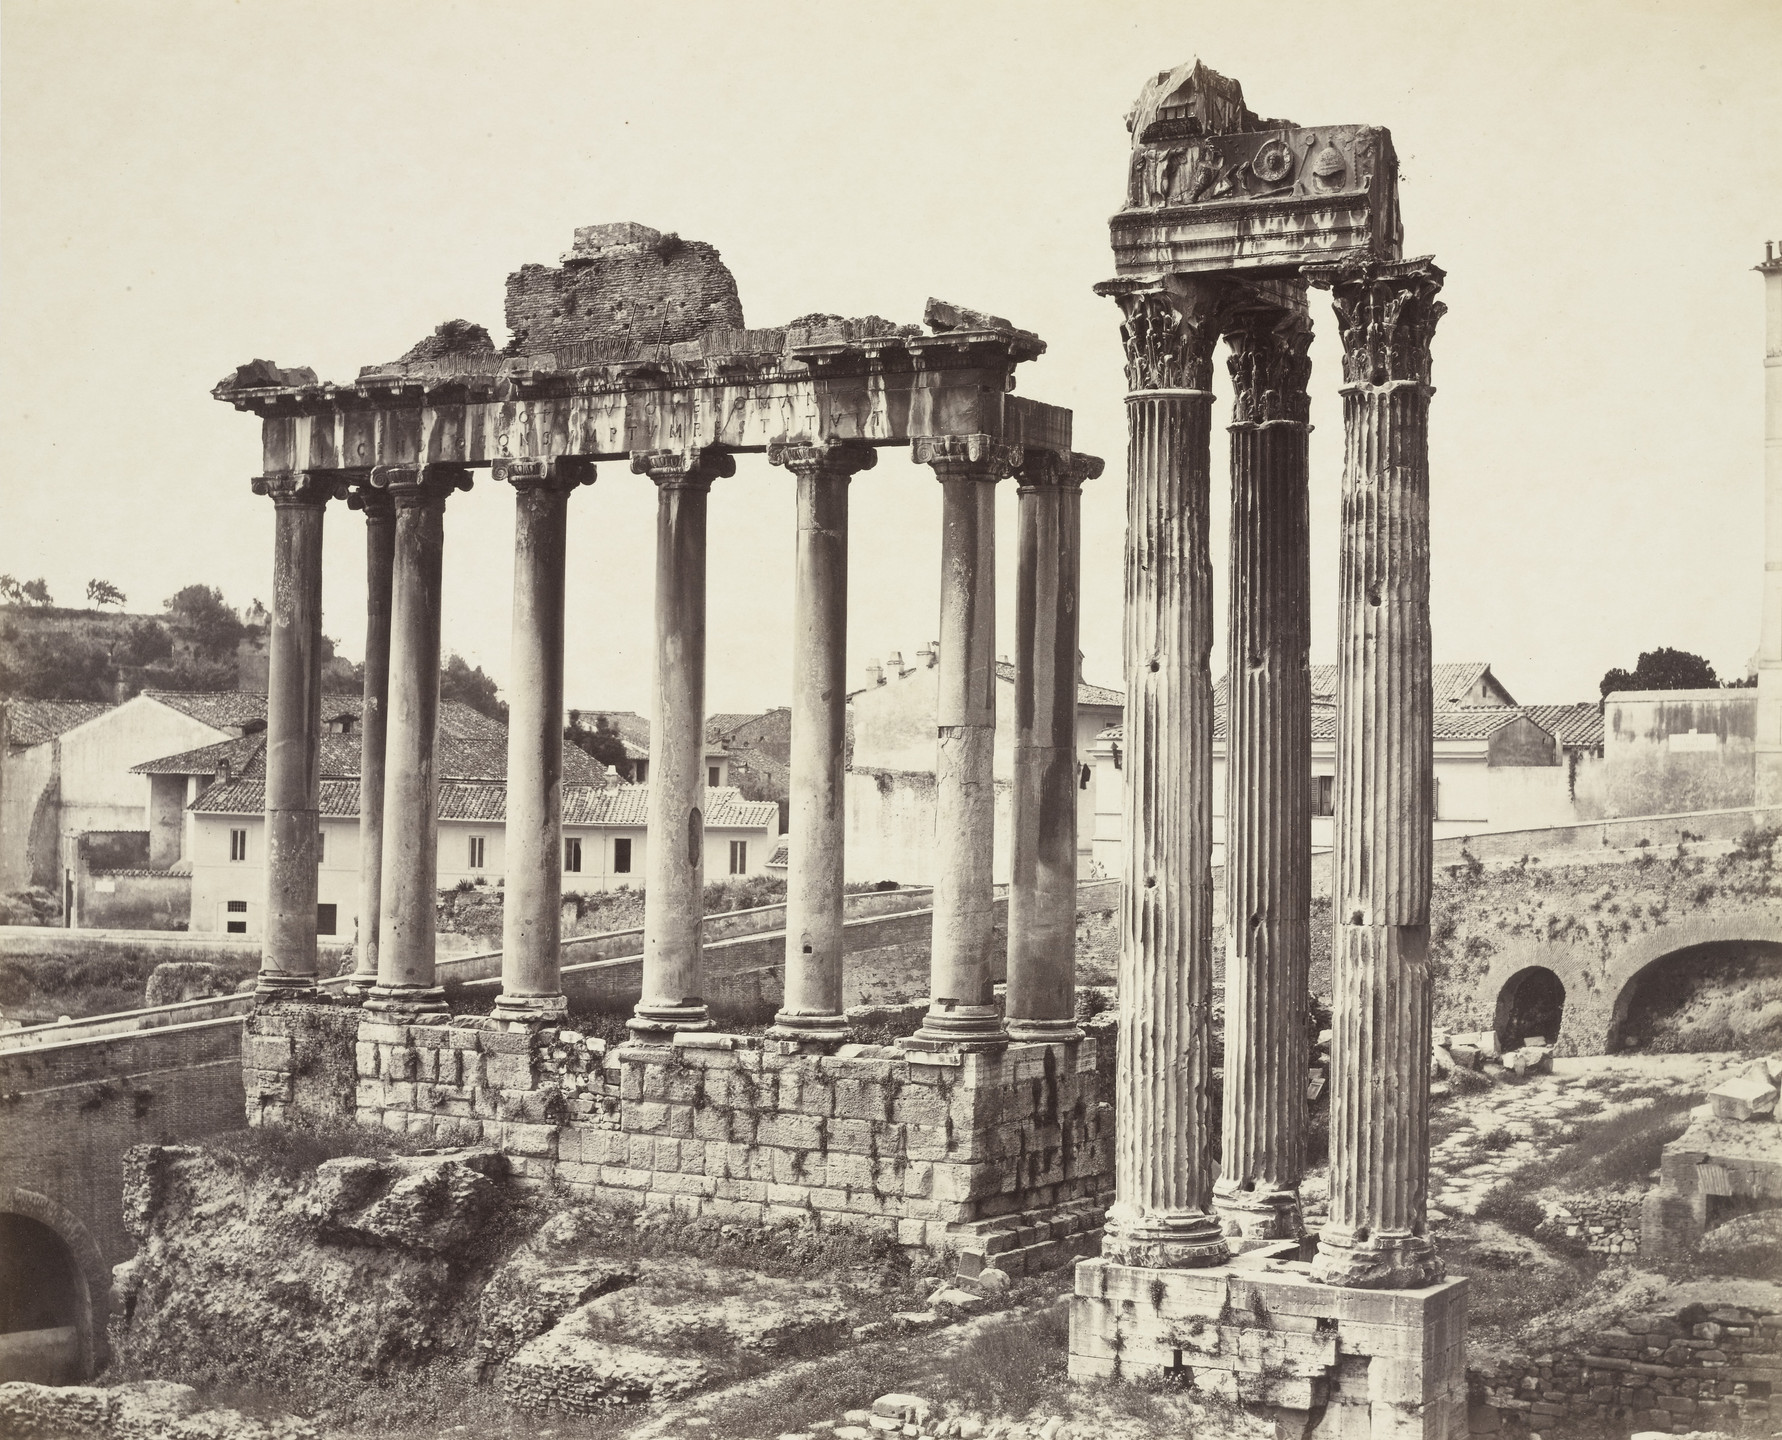 Louis-Auguste Bisson, Auguste-Rosalie Bisson. The Temples of Saturn and Concord in the Roman Forum. c. 1860